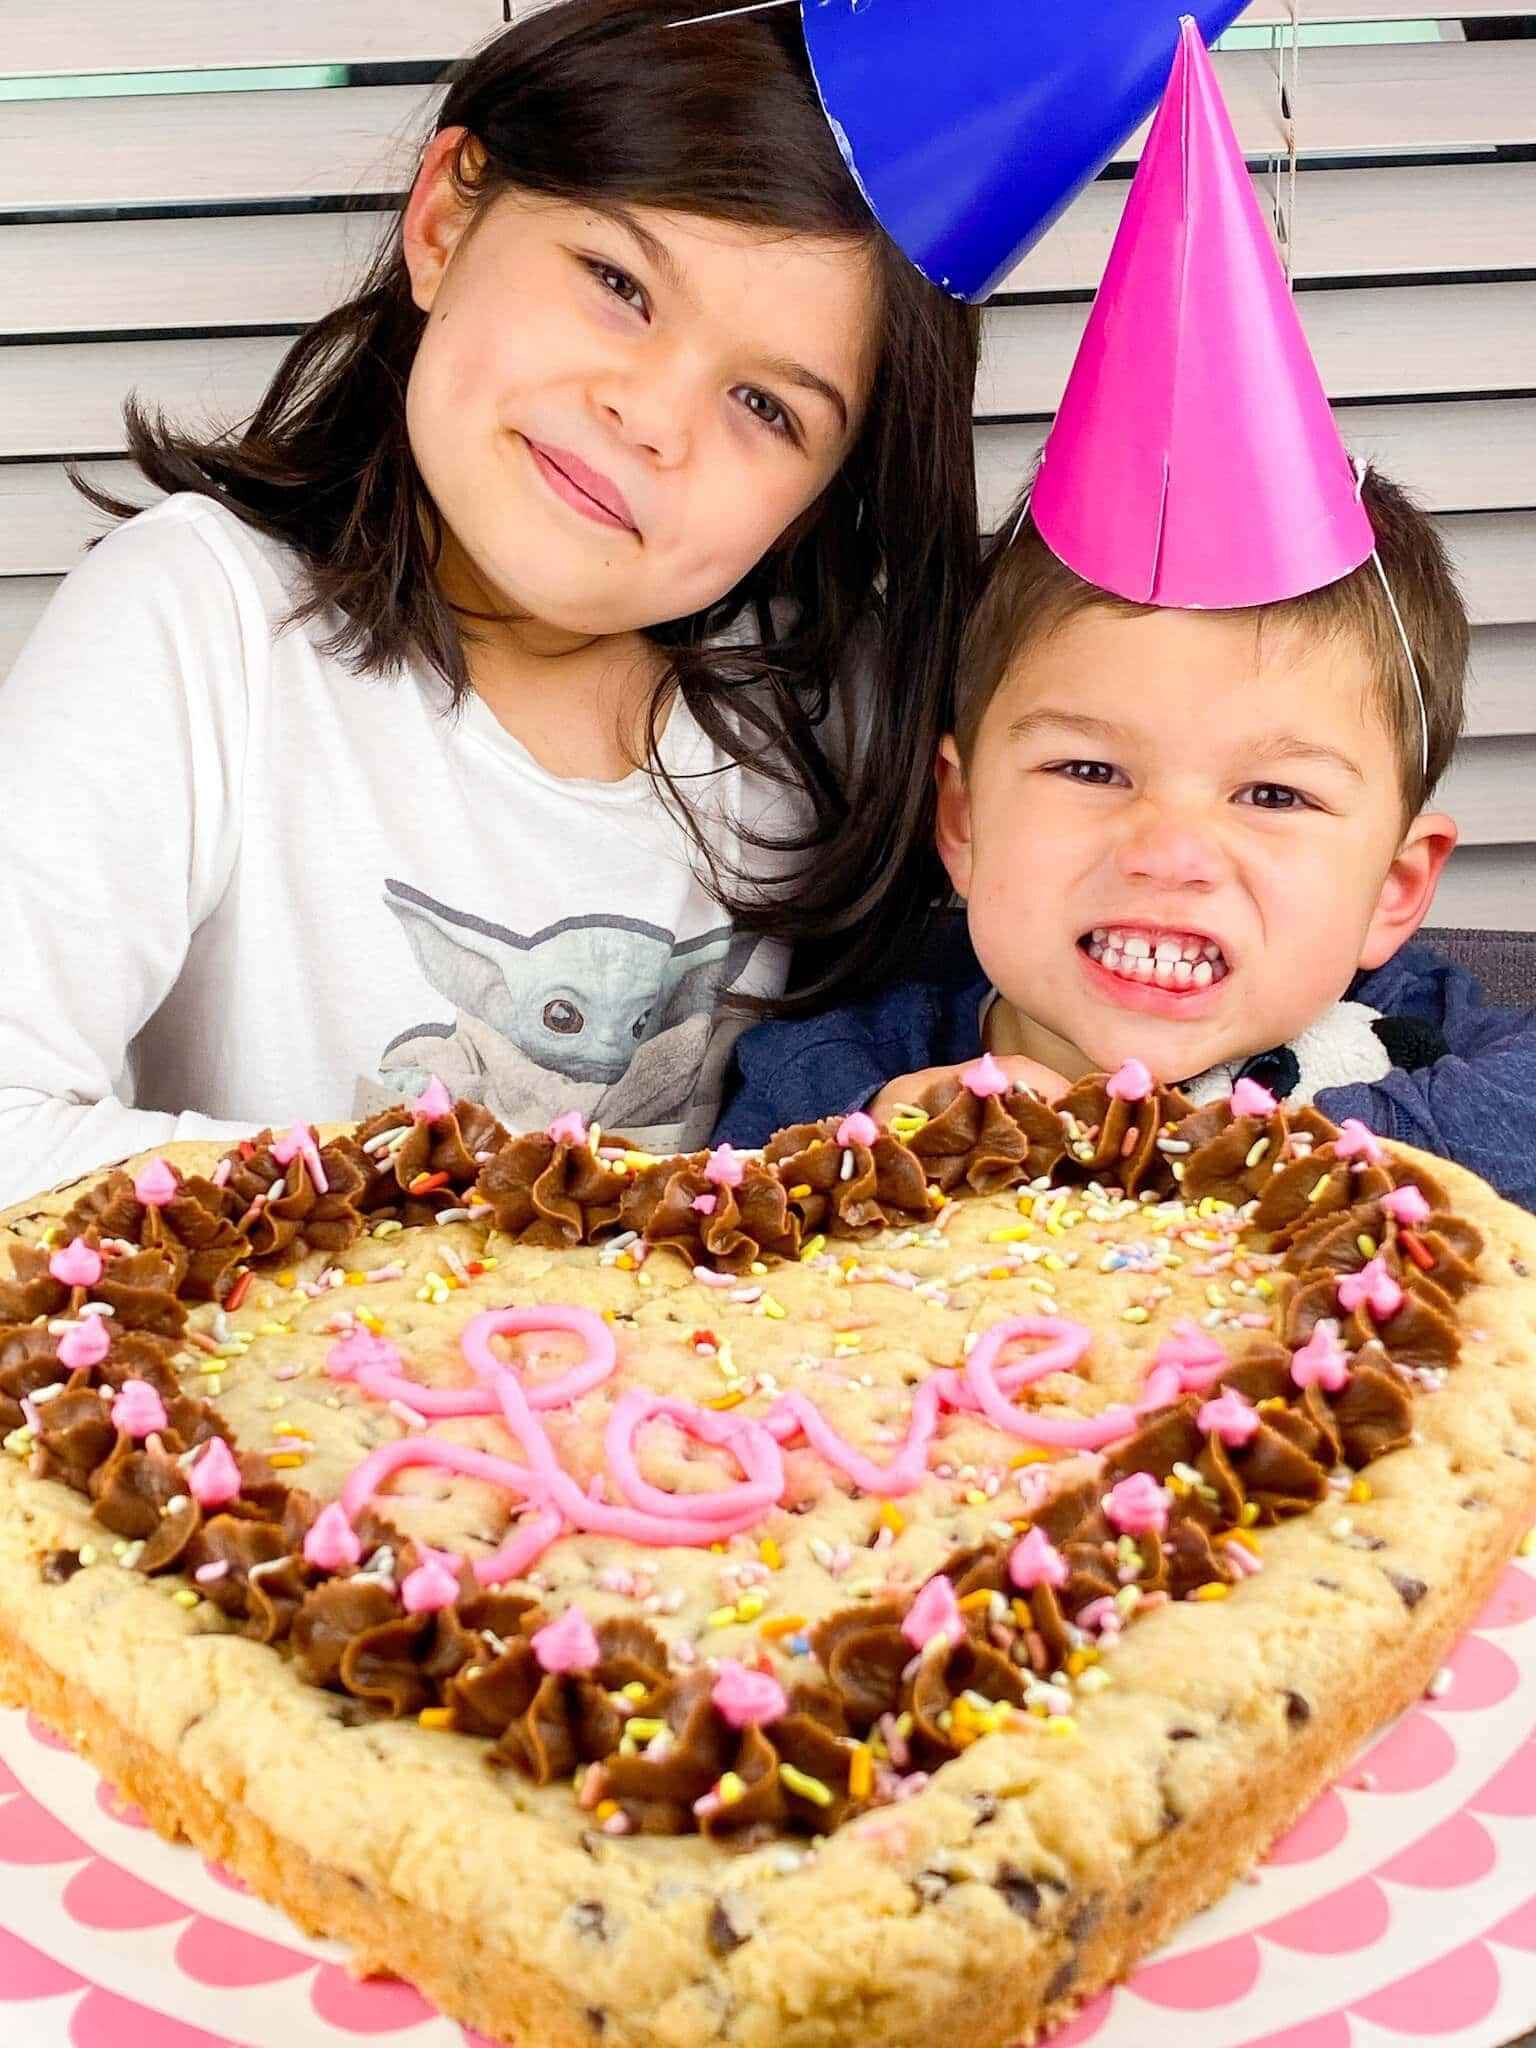 Kate's Safe and Sweet - Heart Shaped Cookie Cake with Kids